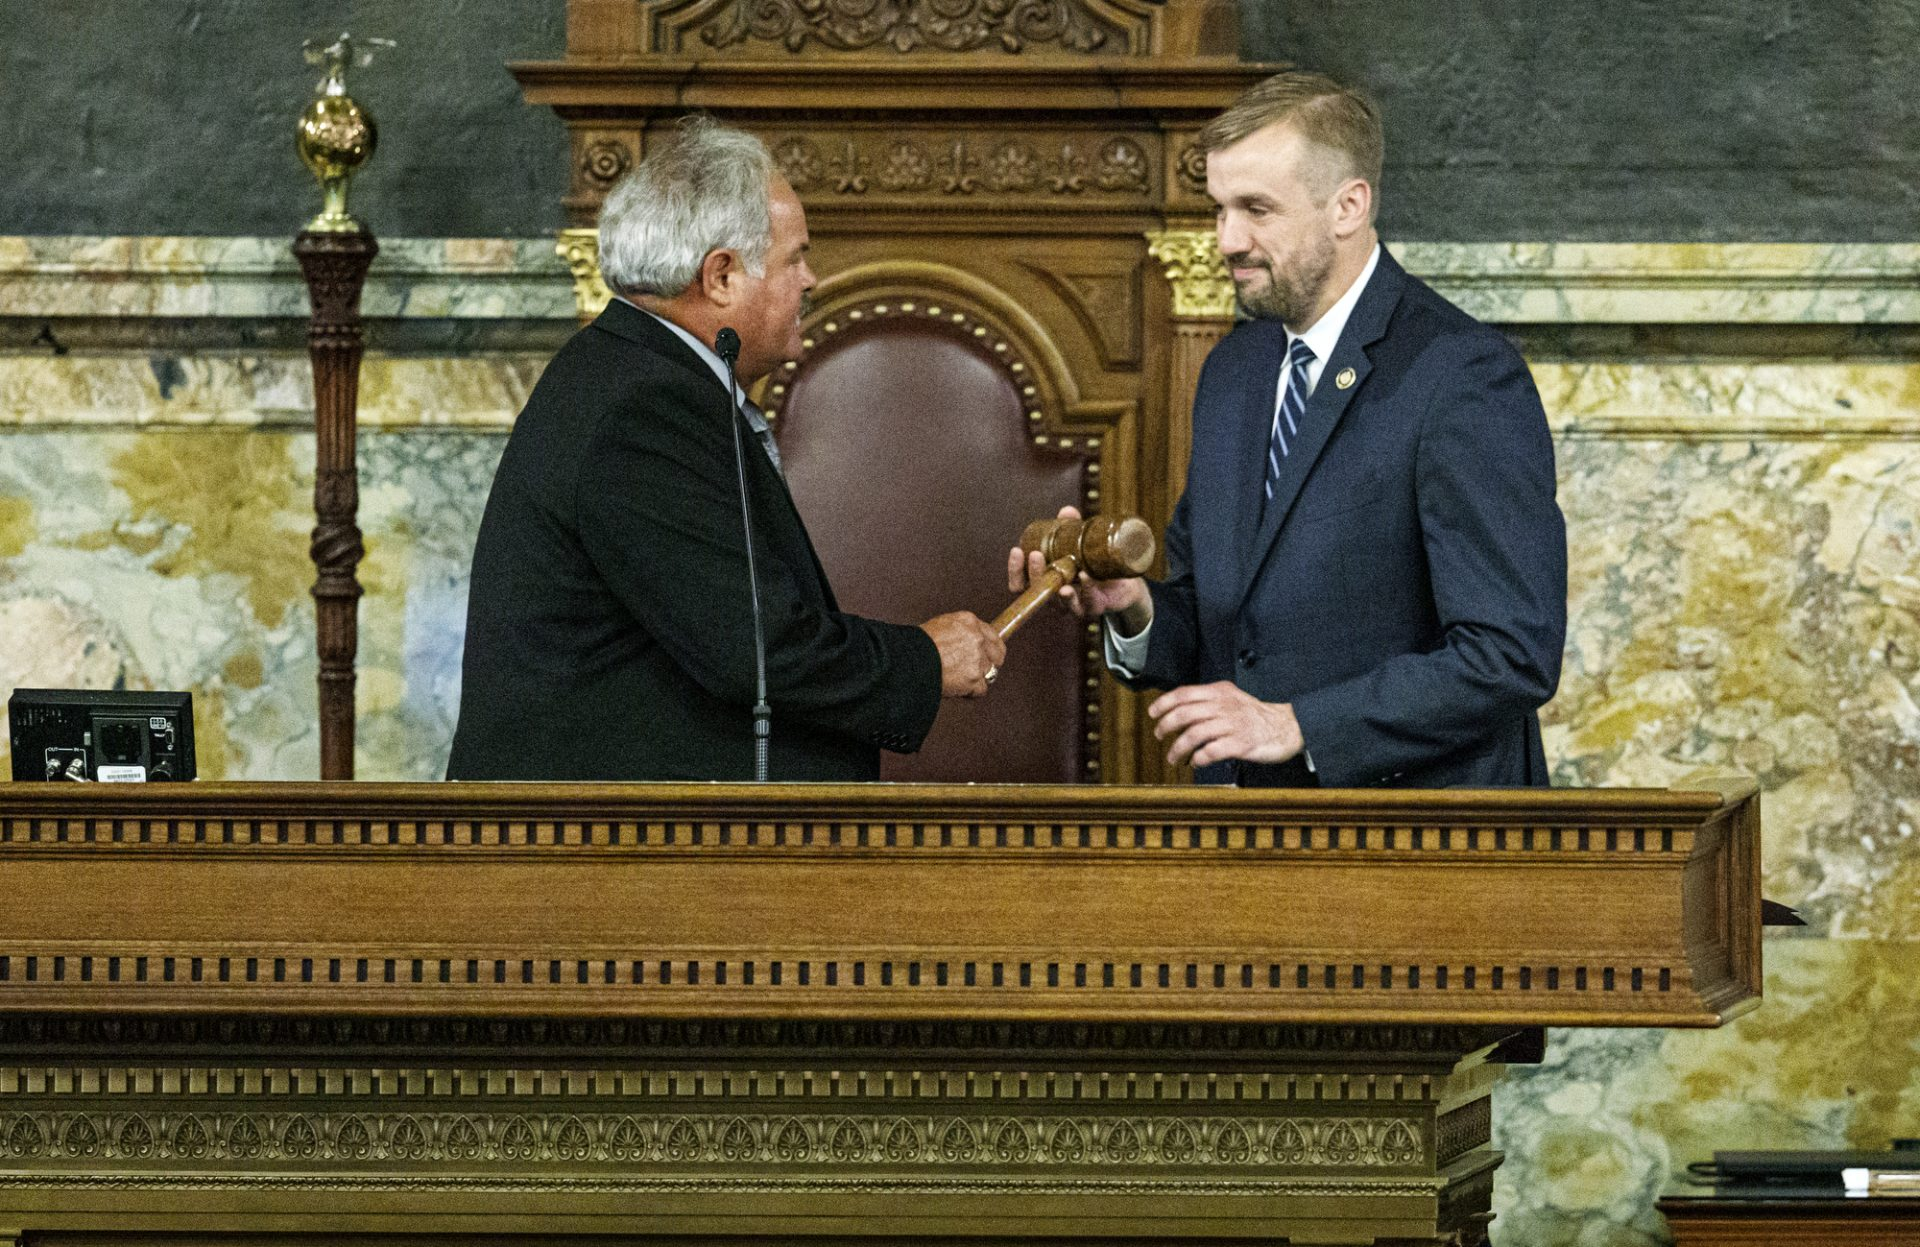 Former state Rep. Scott Boyd, left, hands the gavel to state Rep. Bryan Cutler, R-Lancaster County, after he was elected to serve as Pennsylvania House Speaker, June 22, 2020.